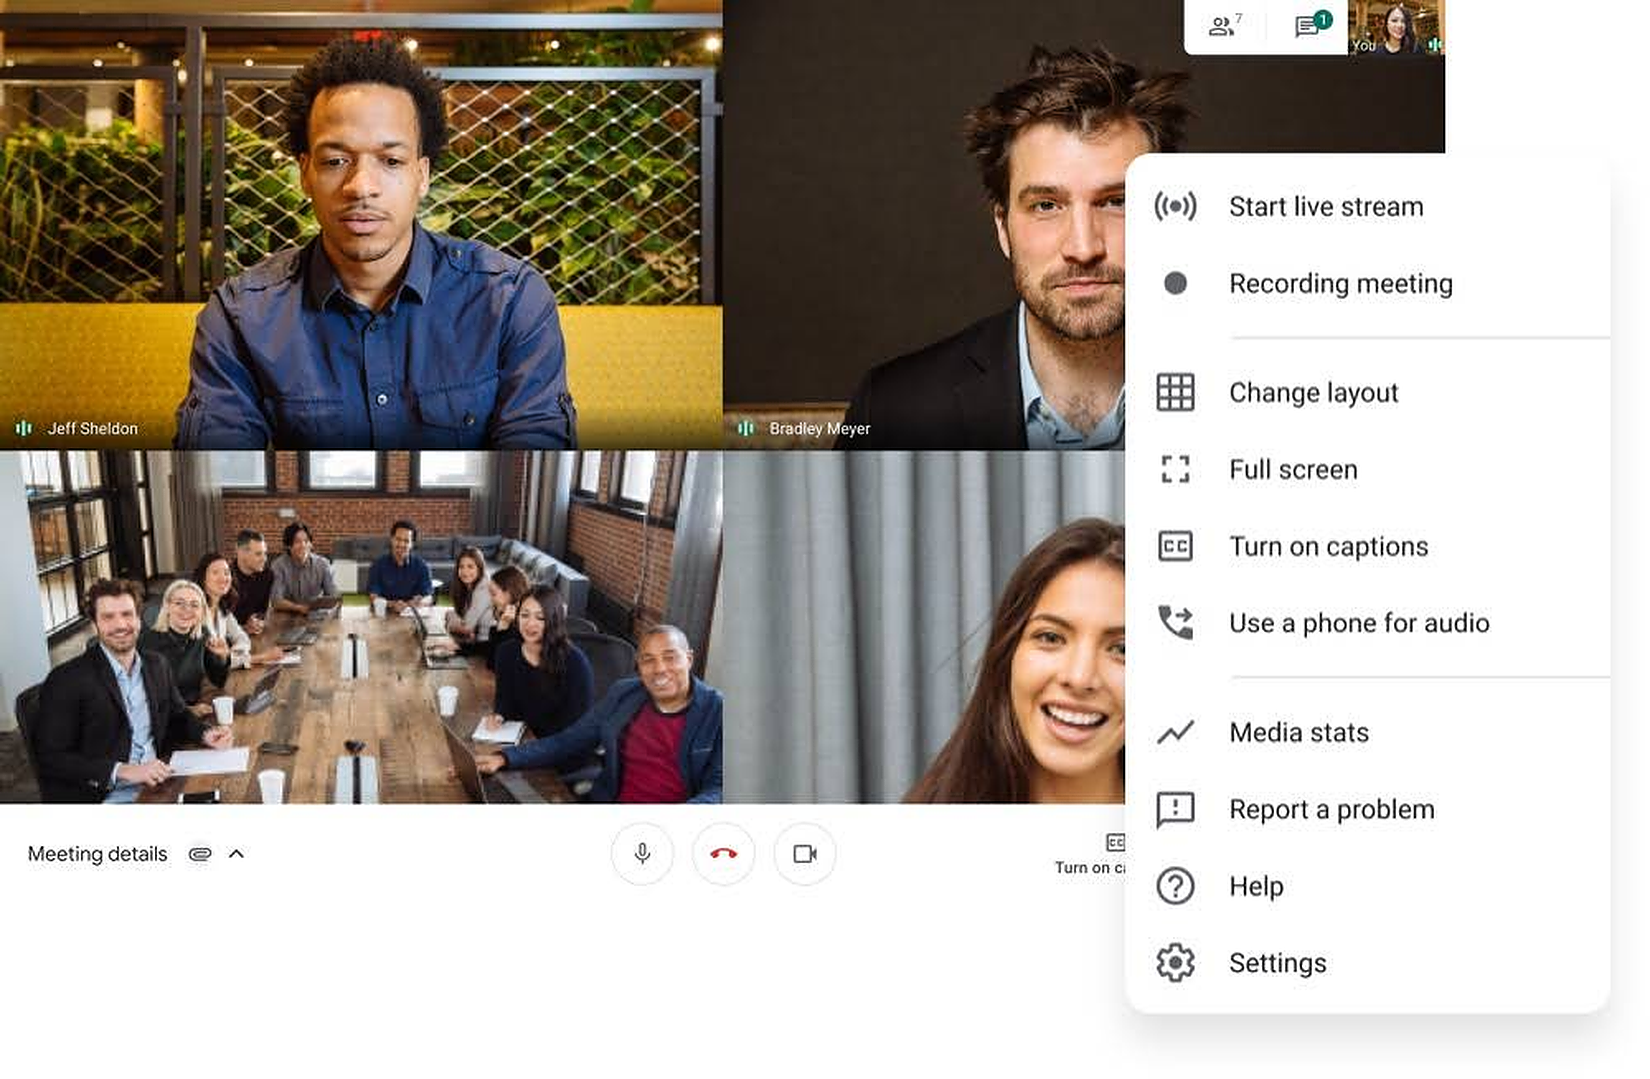 How to Download & Use Google Meet on PC